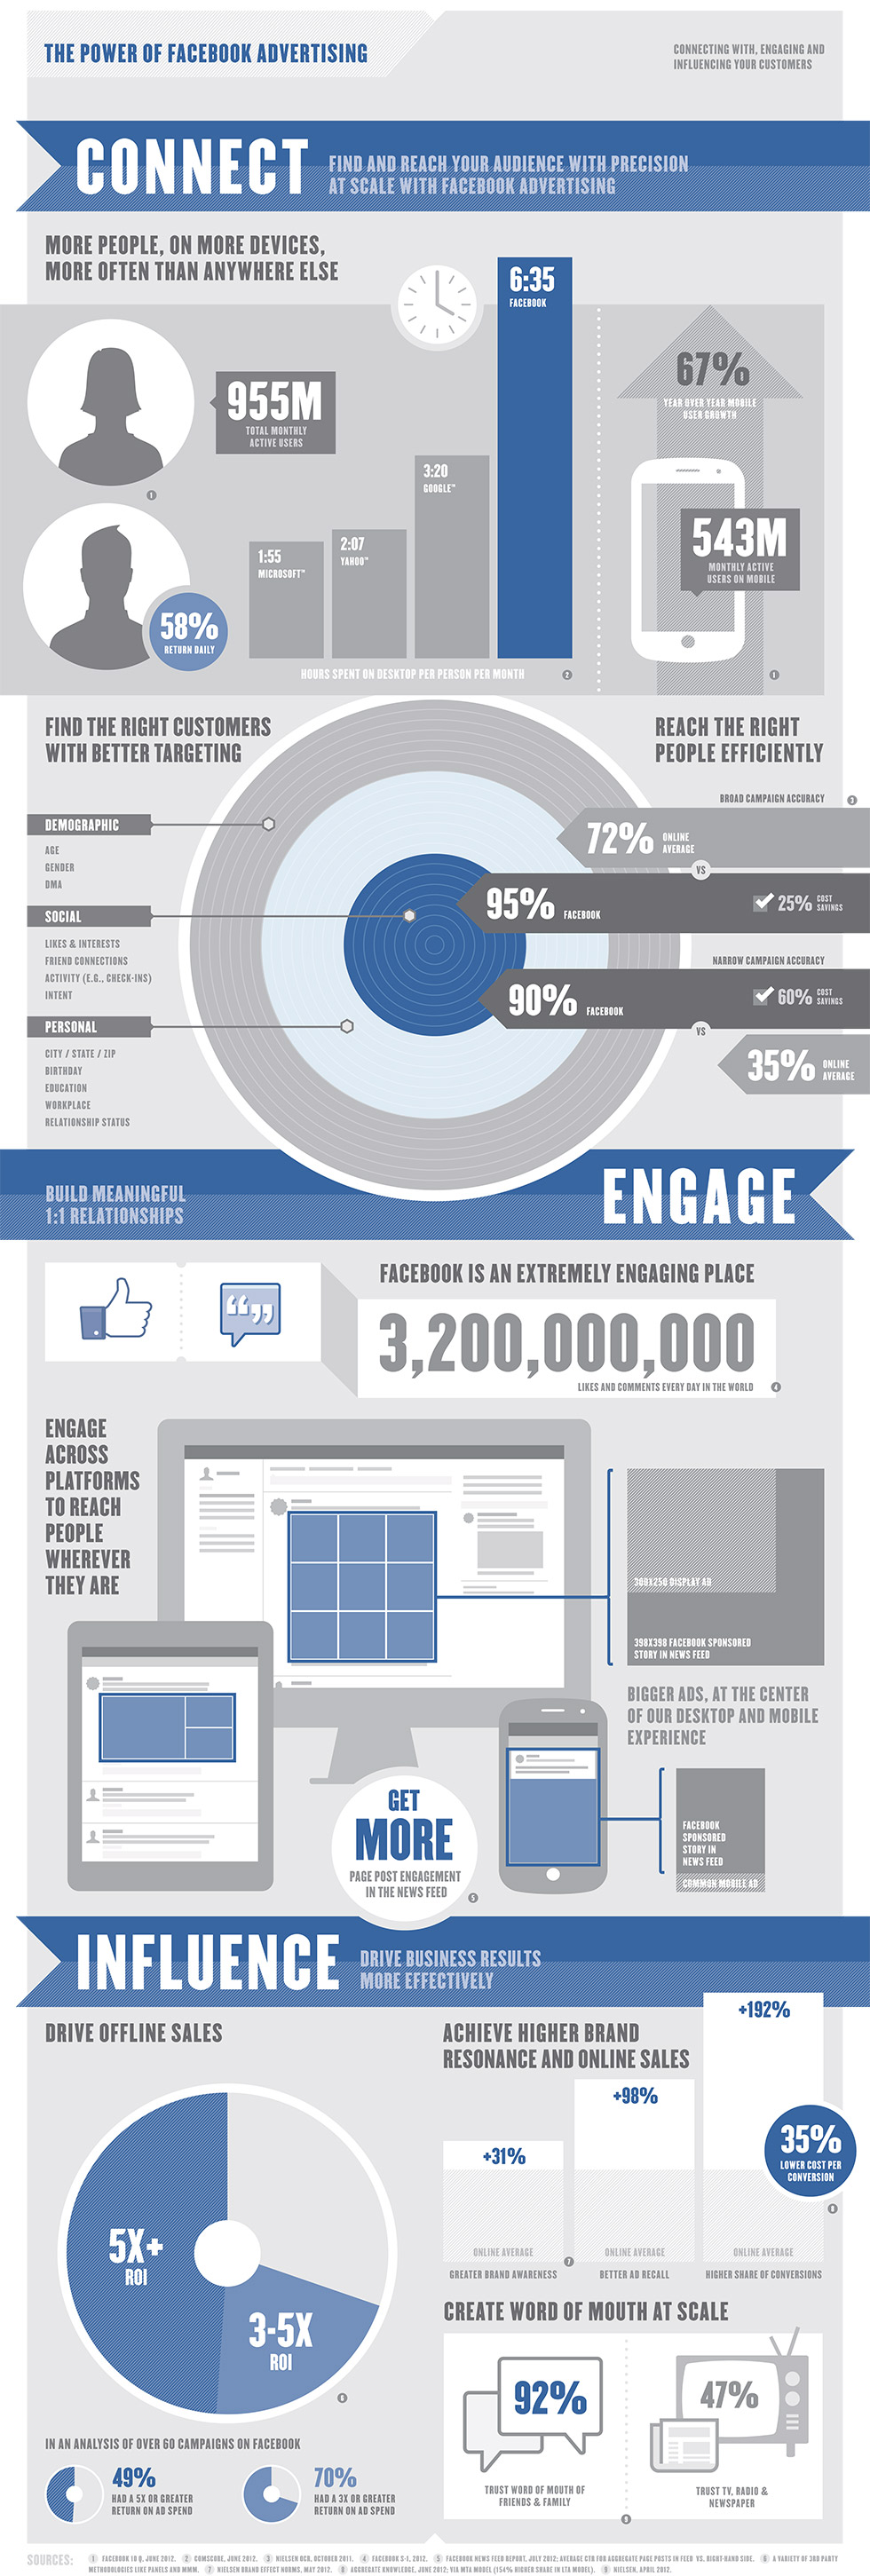 Facebook Power Of Advertising Infographic